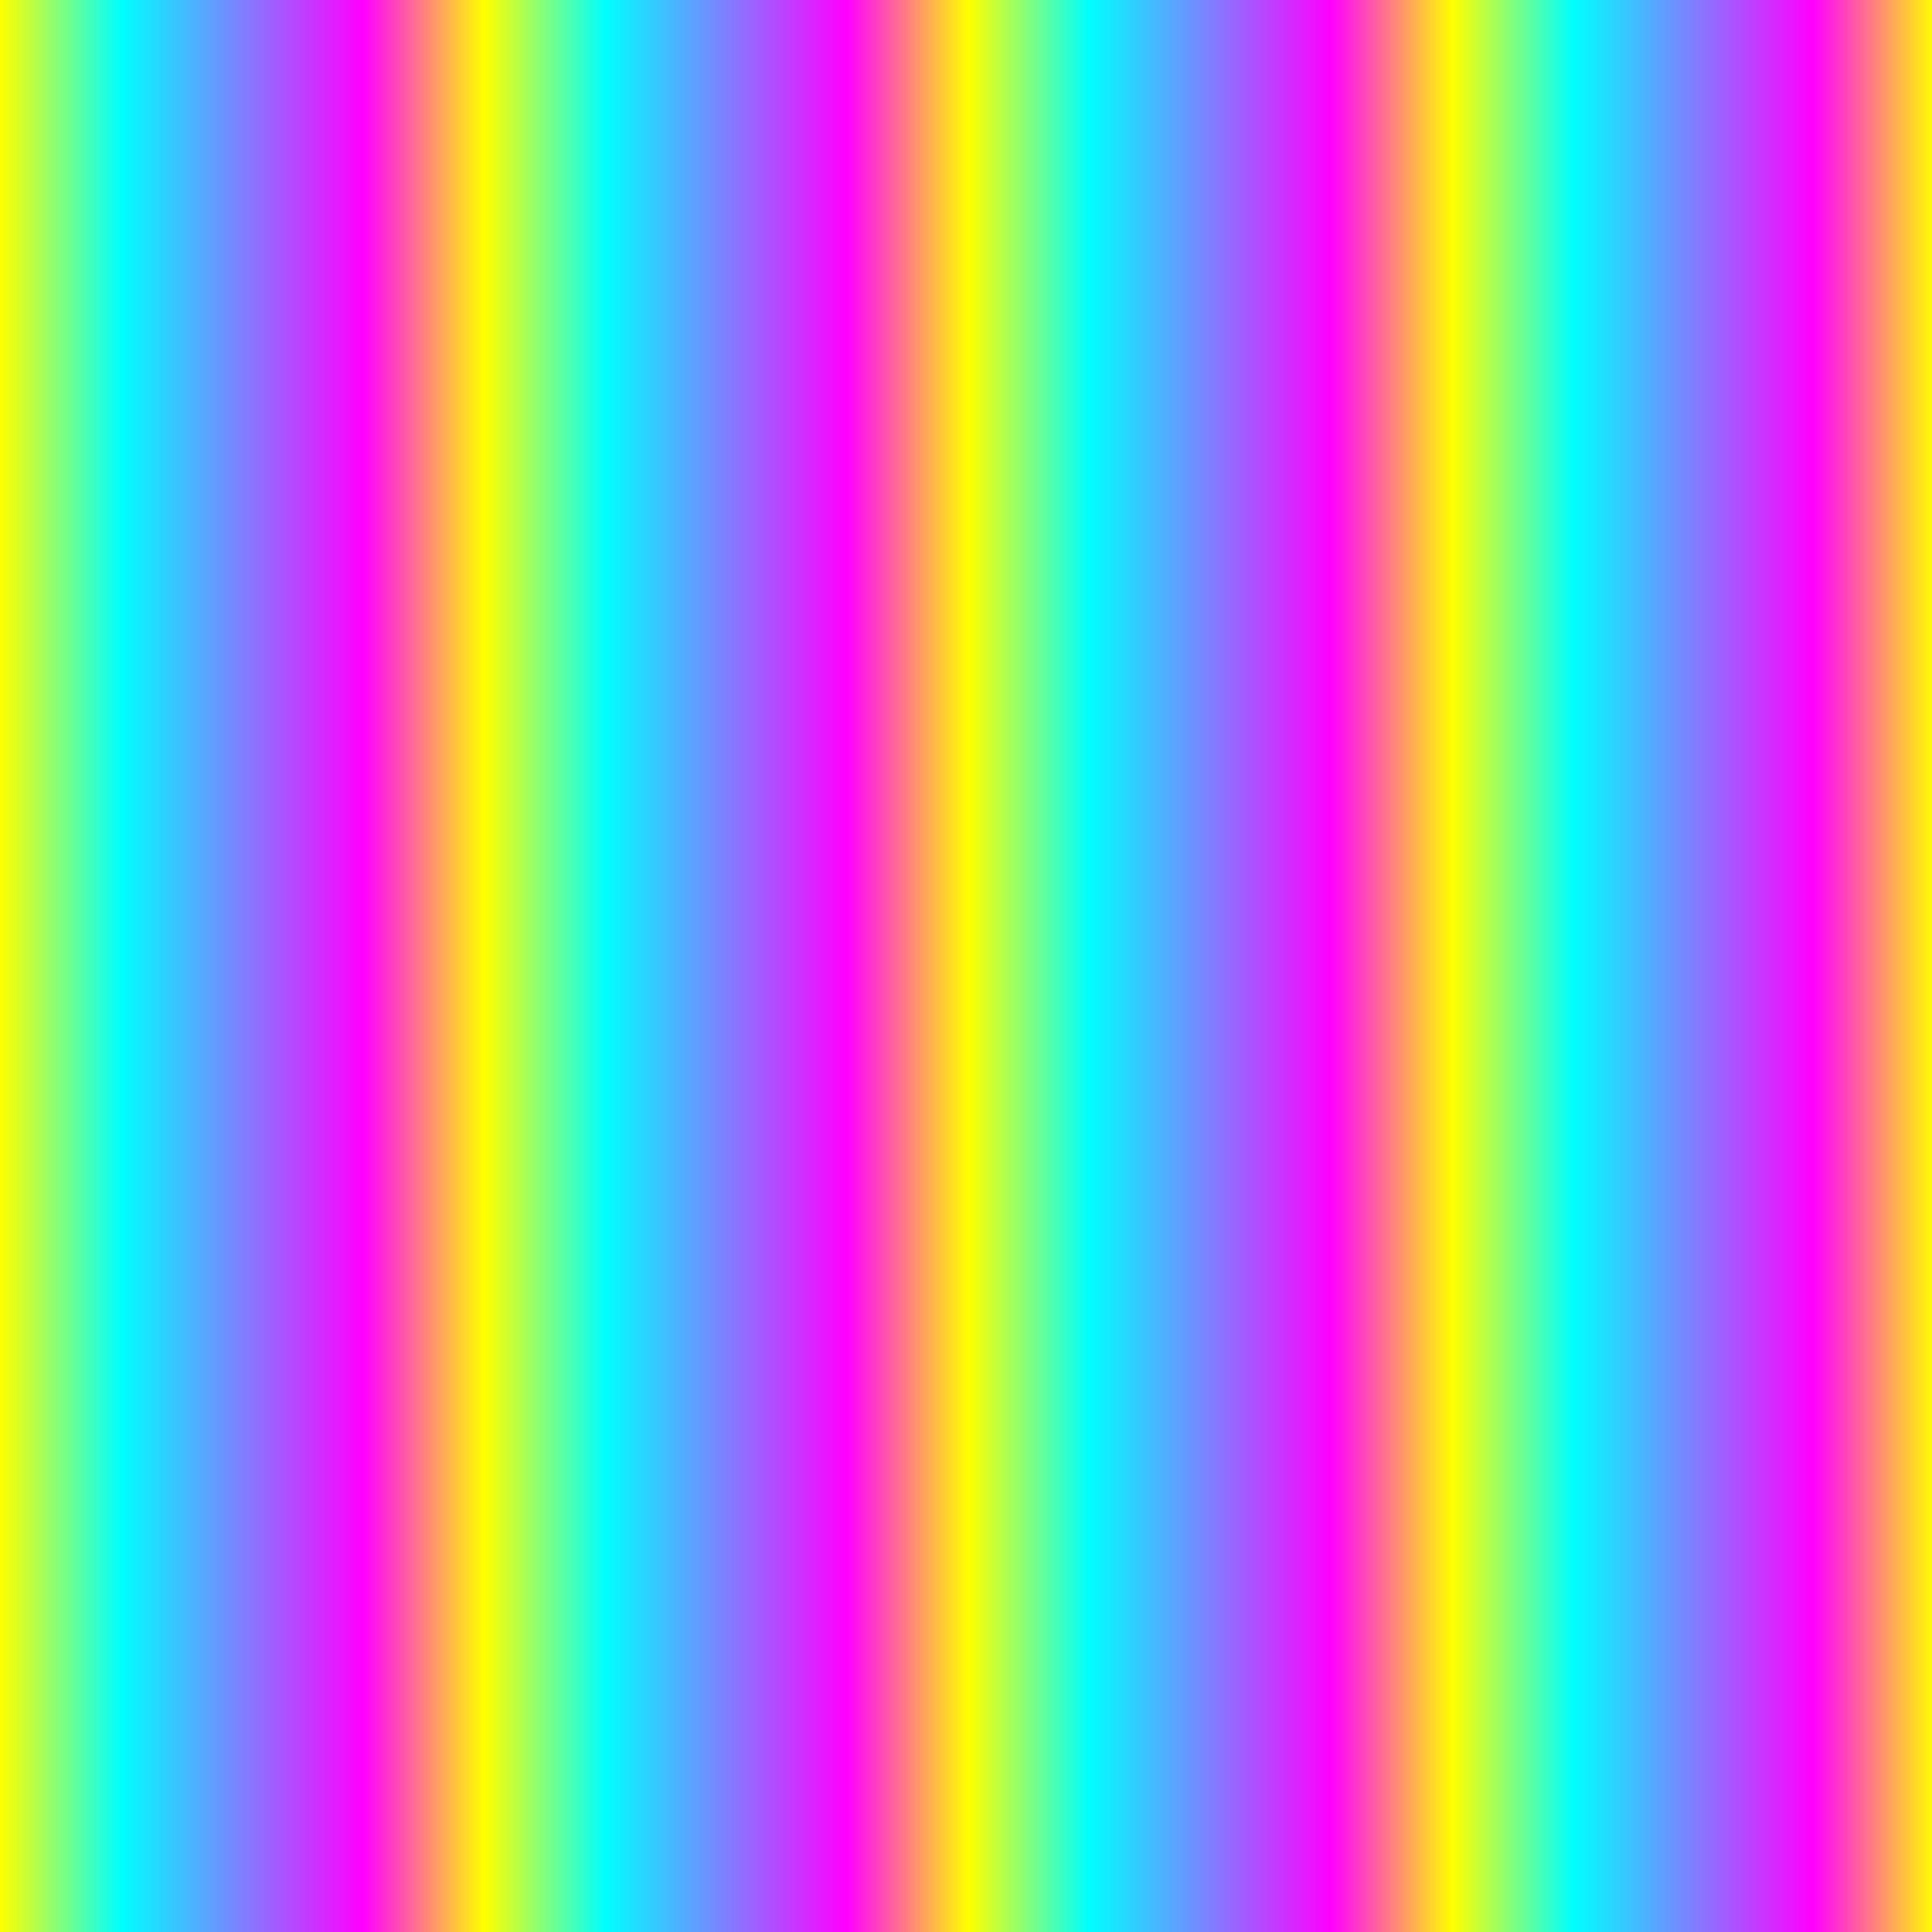 ycm rainbow gradient by 10binary